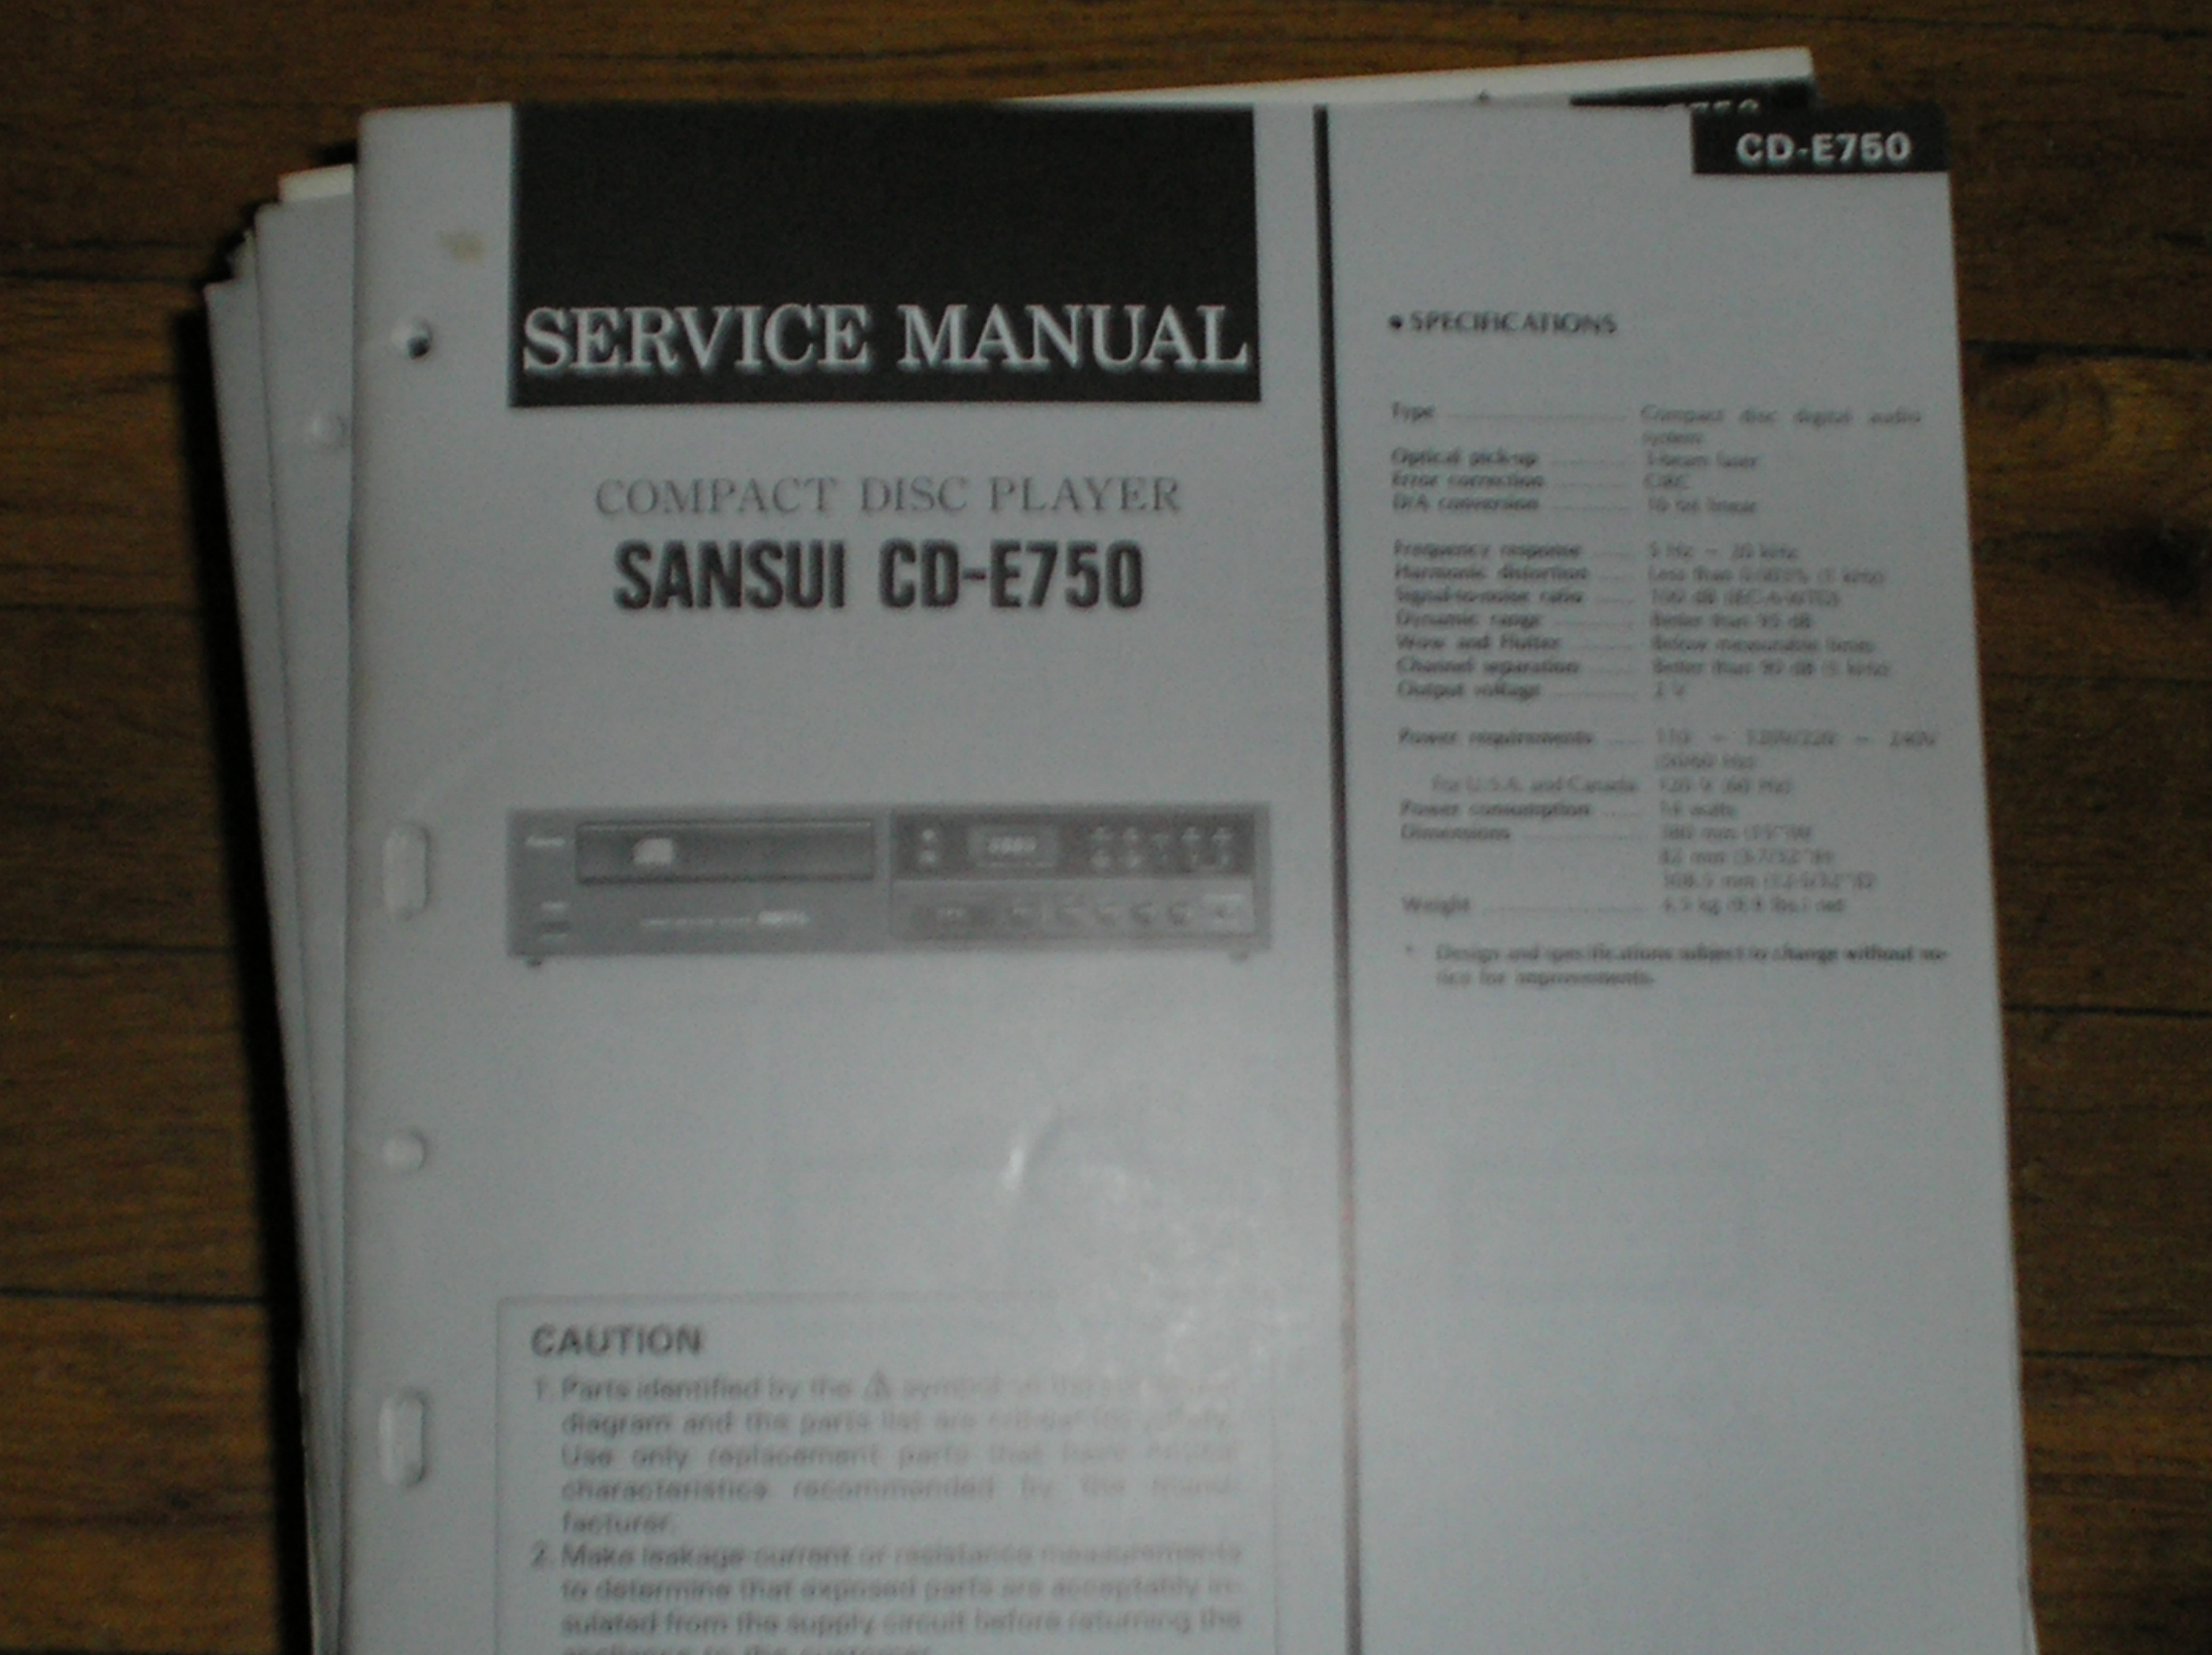 CD-E750 CD Player Service Manual